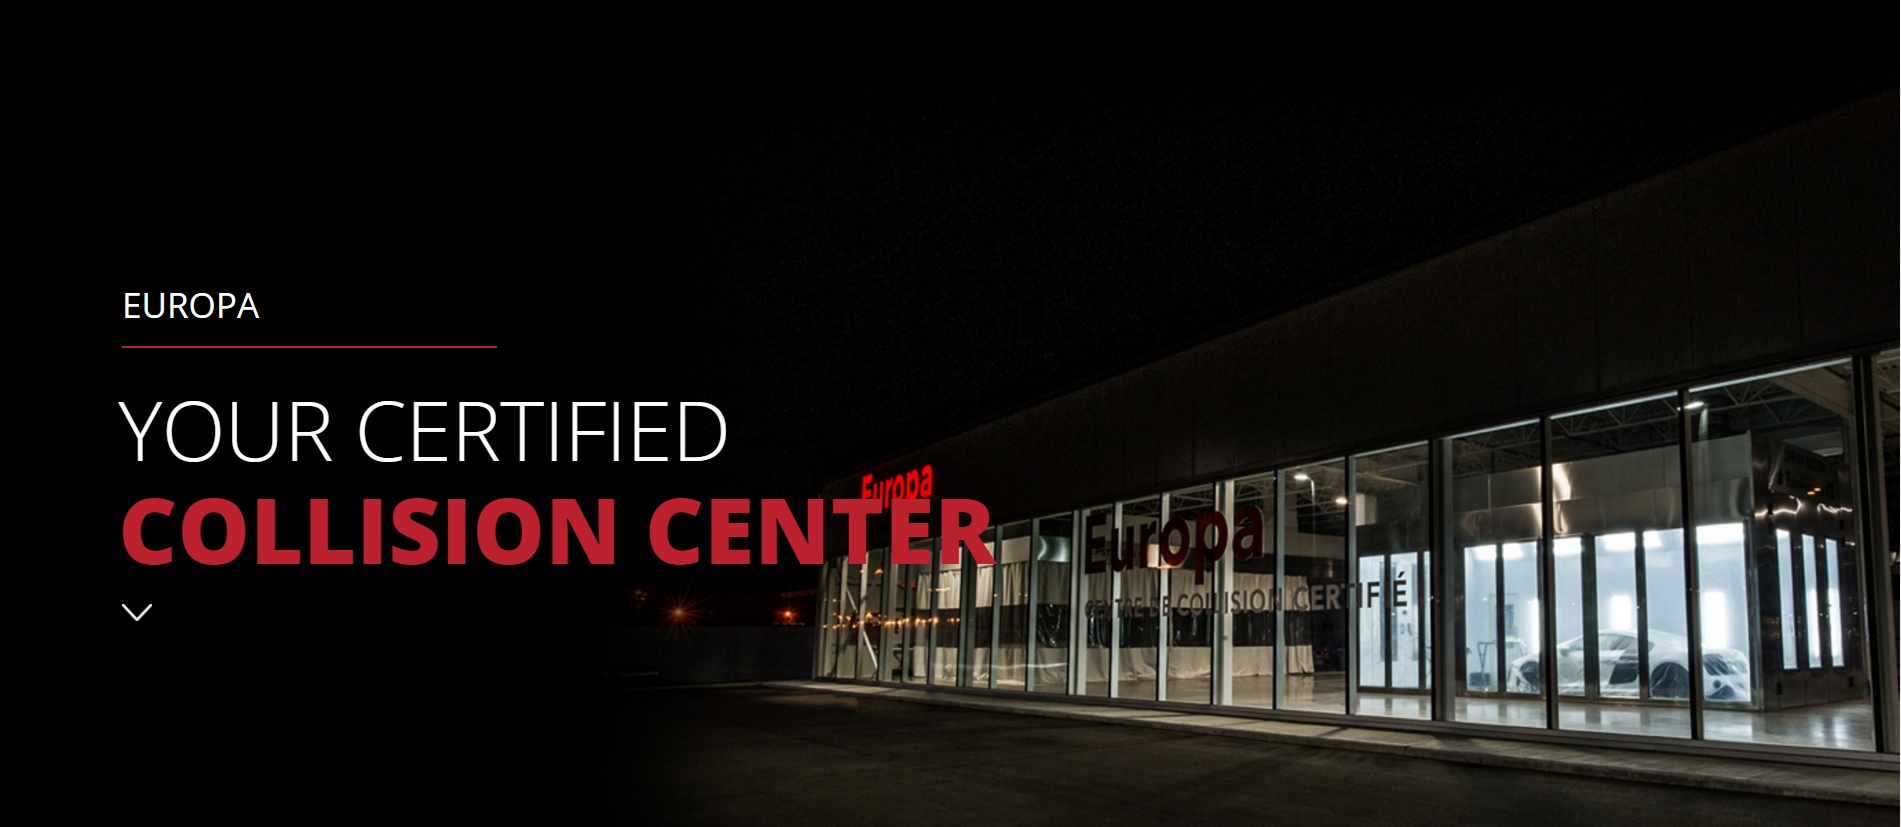 Europa Certified Collision Center in Laval, near Montreal